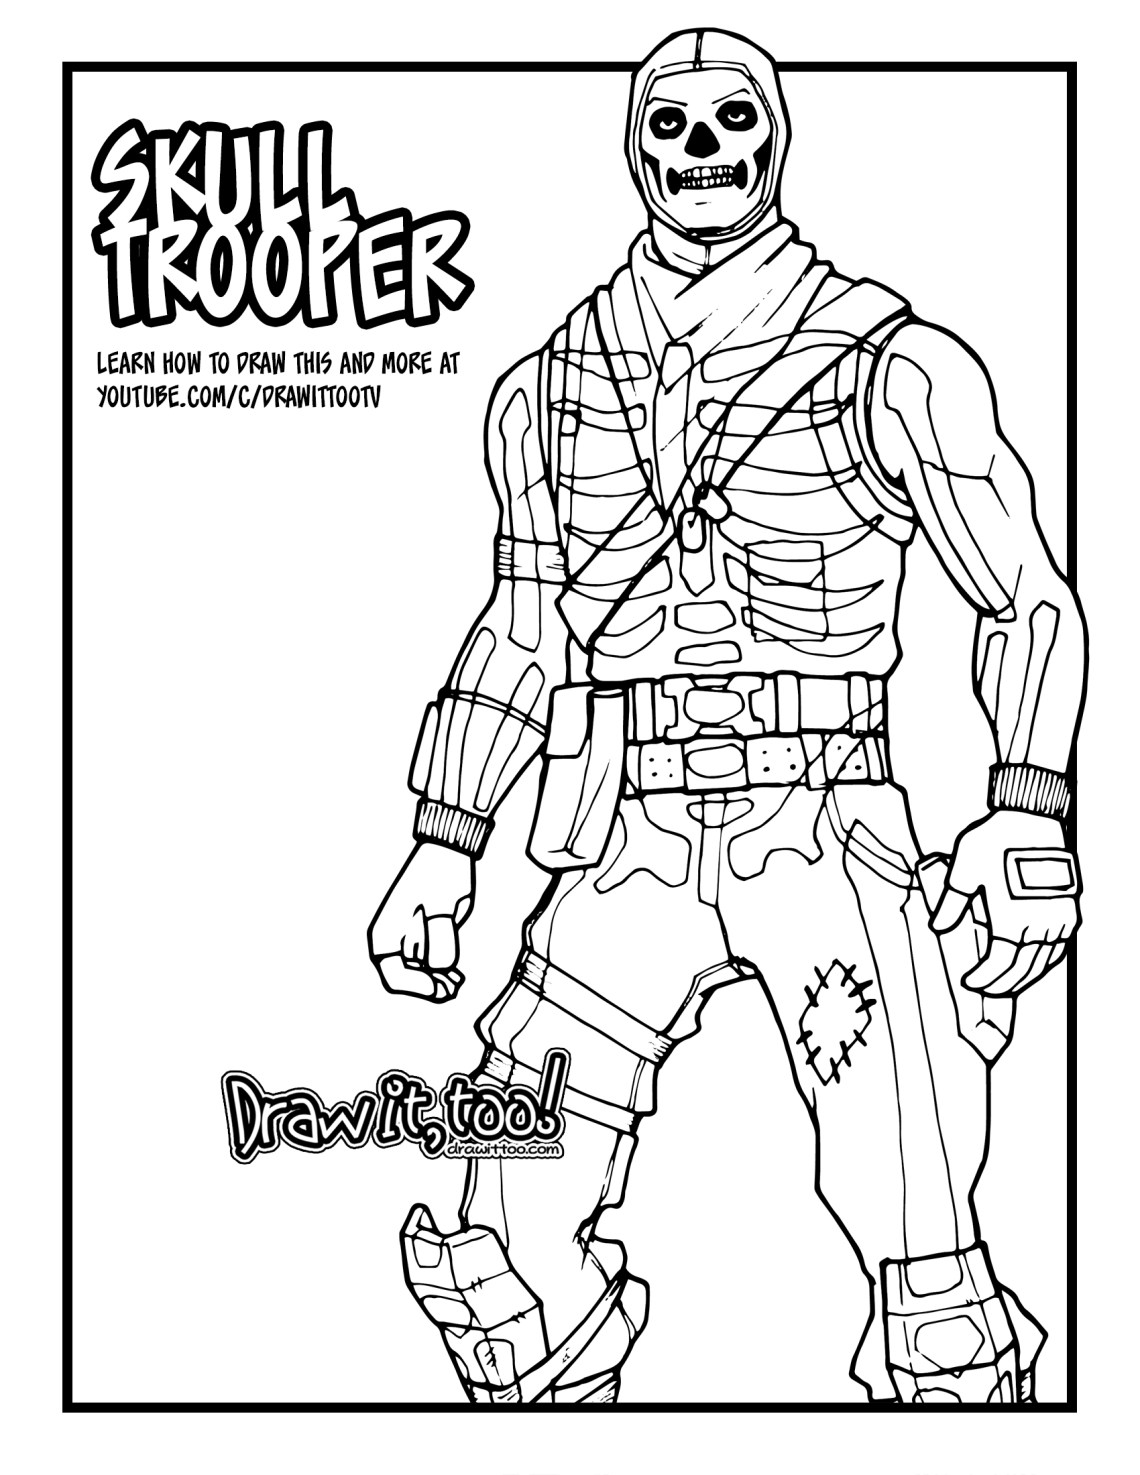 This is an image of Satisfactory Fornite Coloring Pages